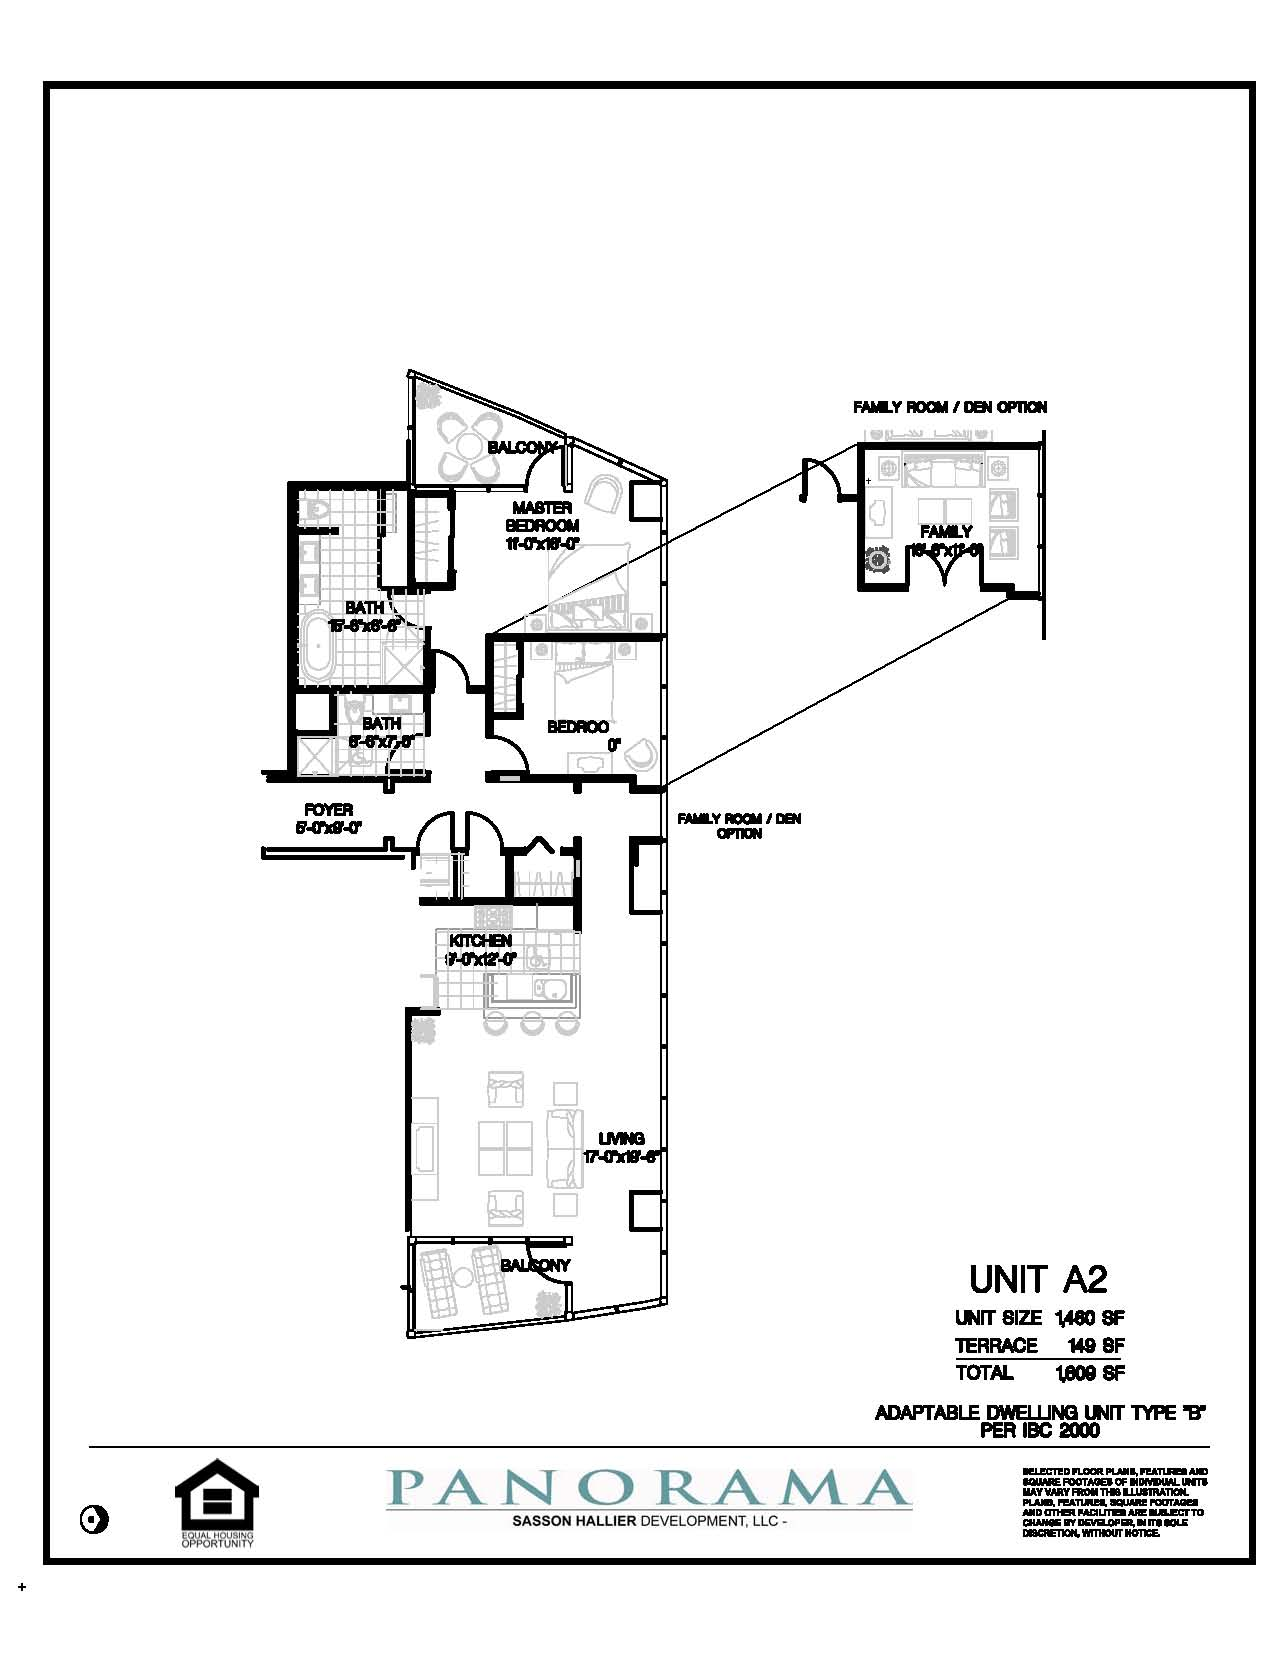 Panorama Floor Plans 2 Bedroom 2 Bath Panorama Towers Las Vegas High Rise C